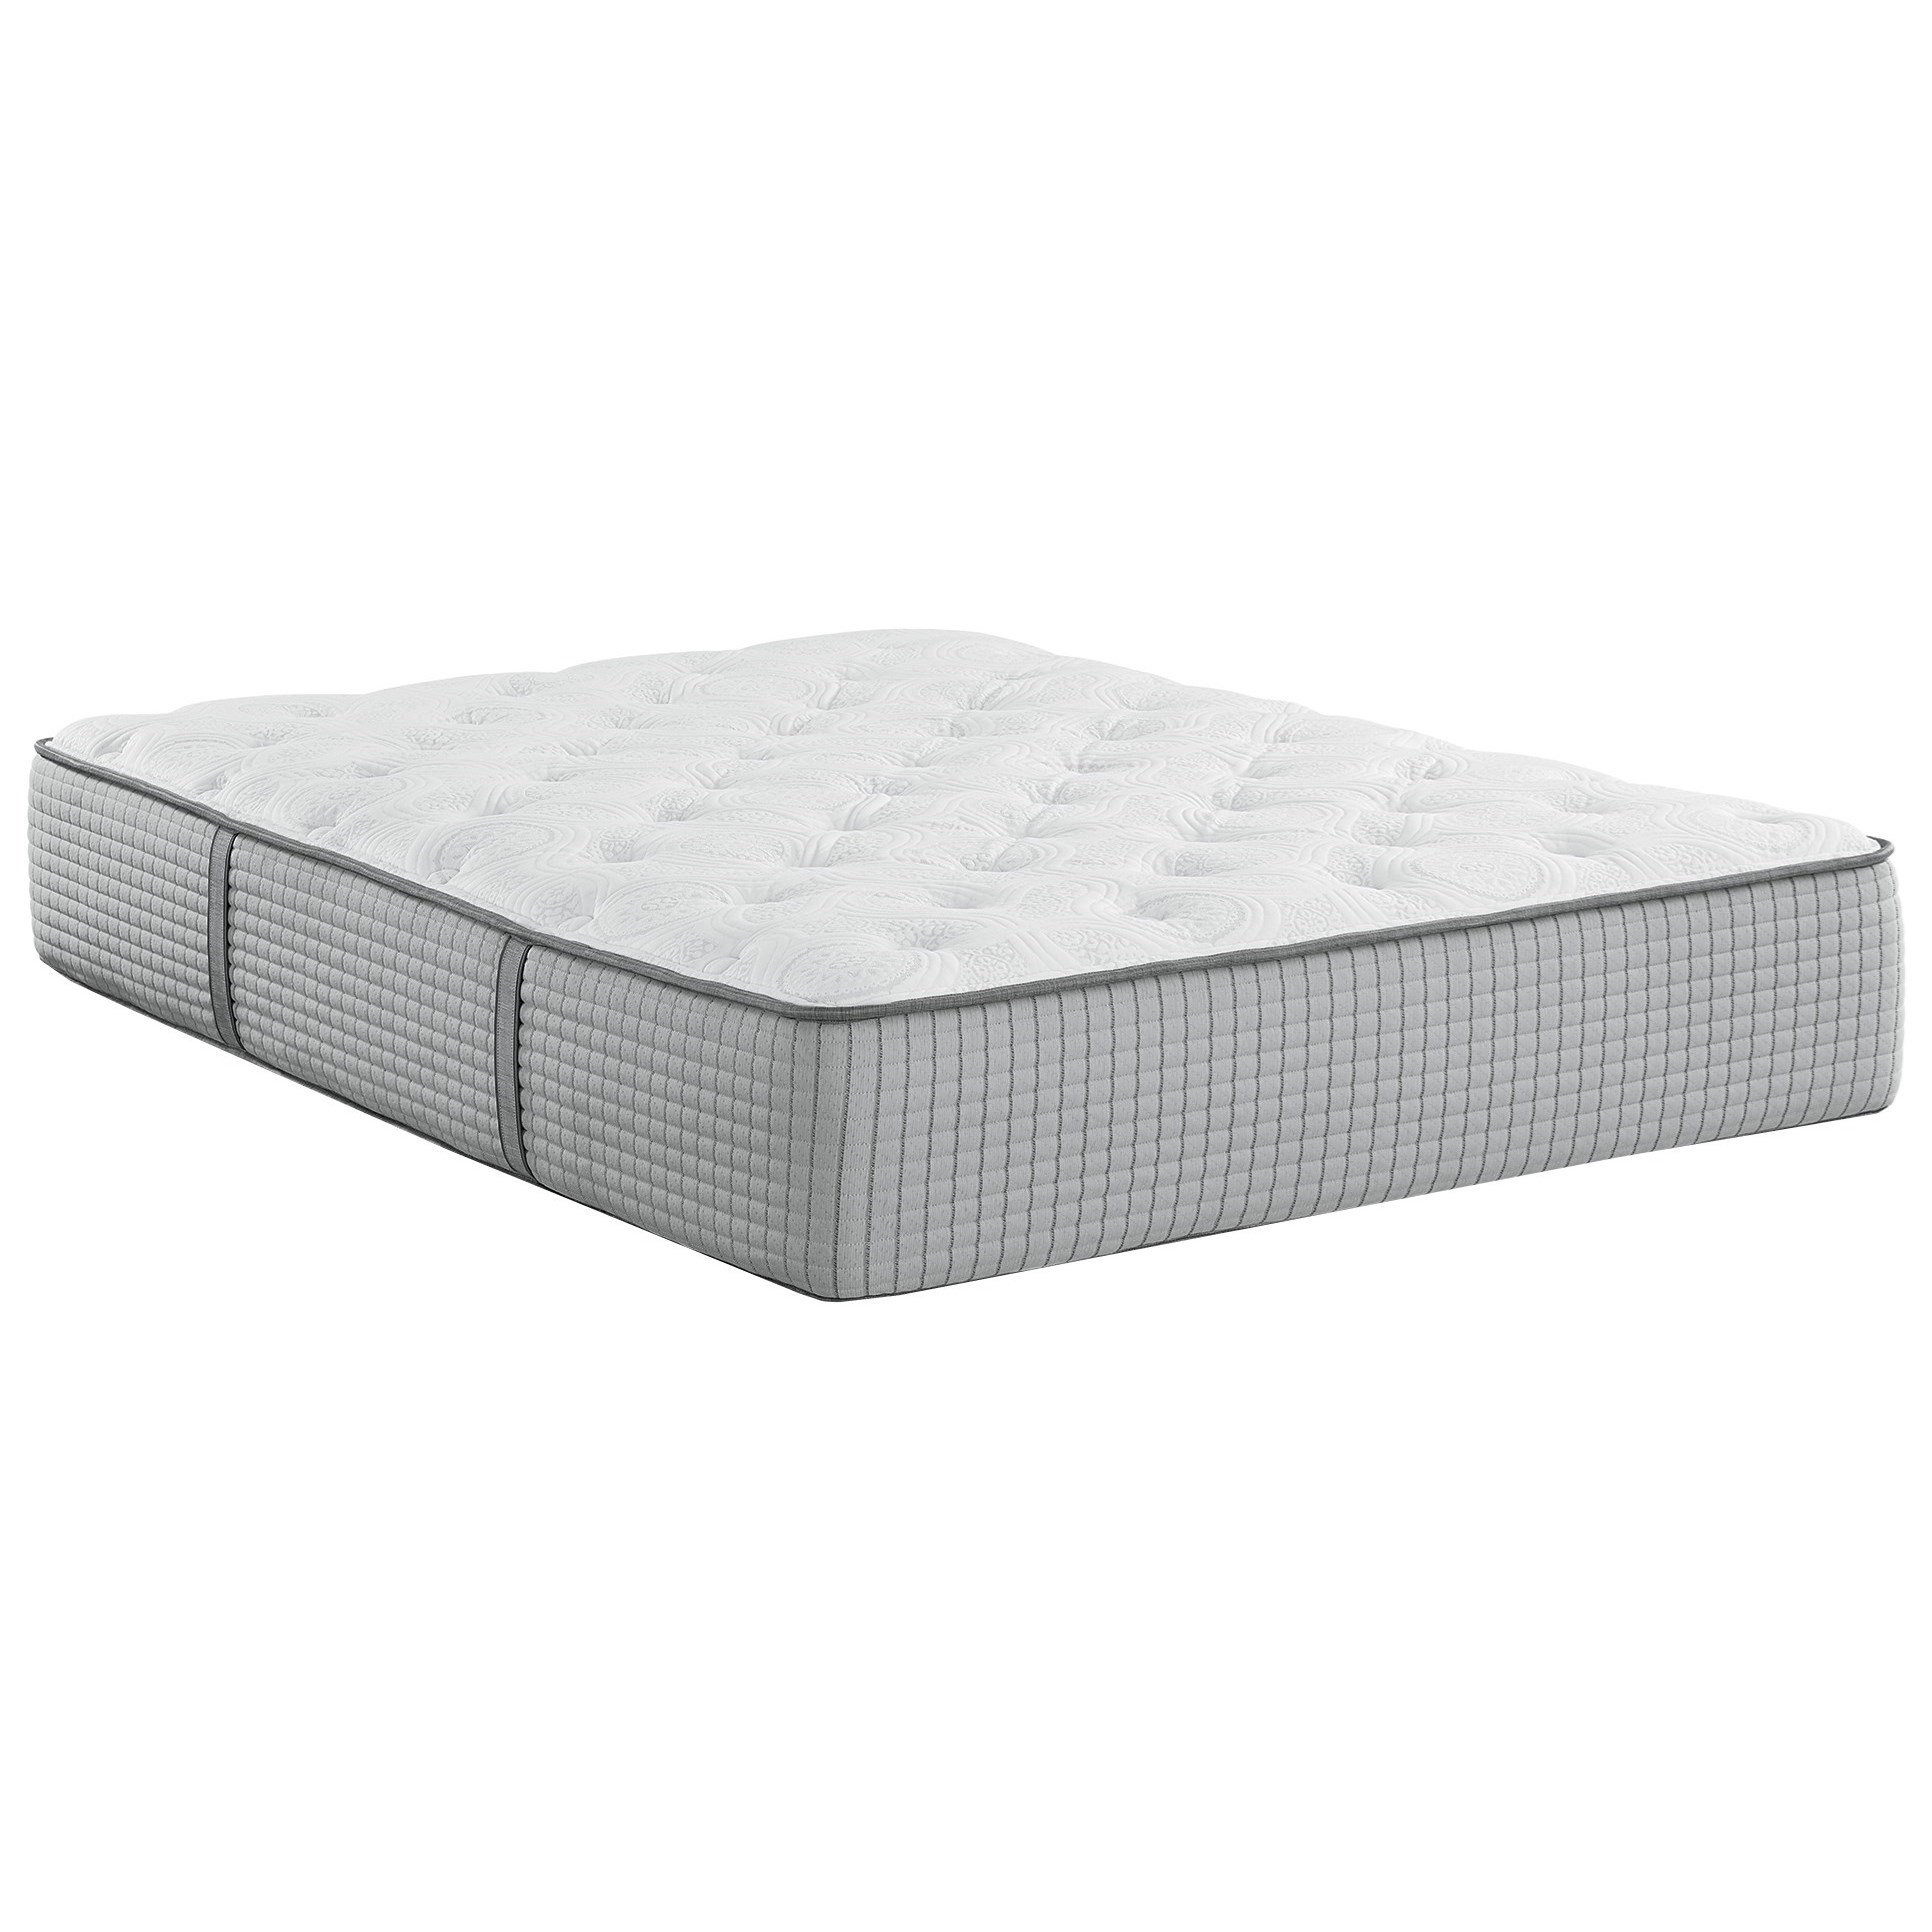 Biltmore Meadow Trail Plush Twin XL Pocketed Coil Mattress by Restonic at Hudson's Furniture